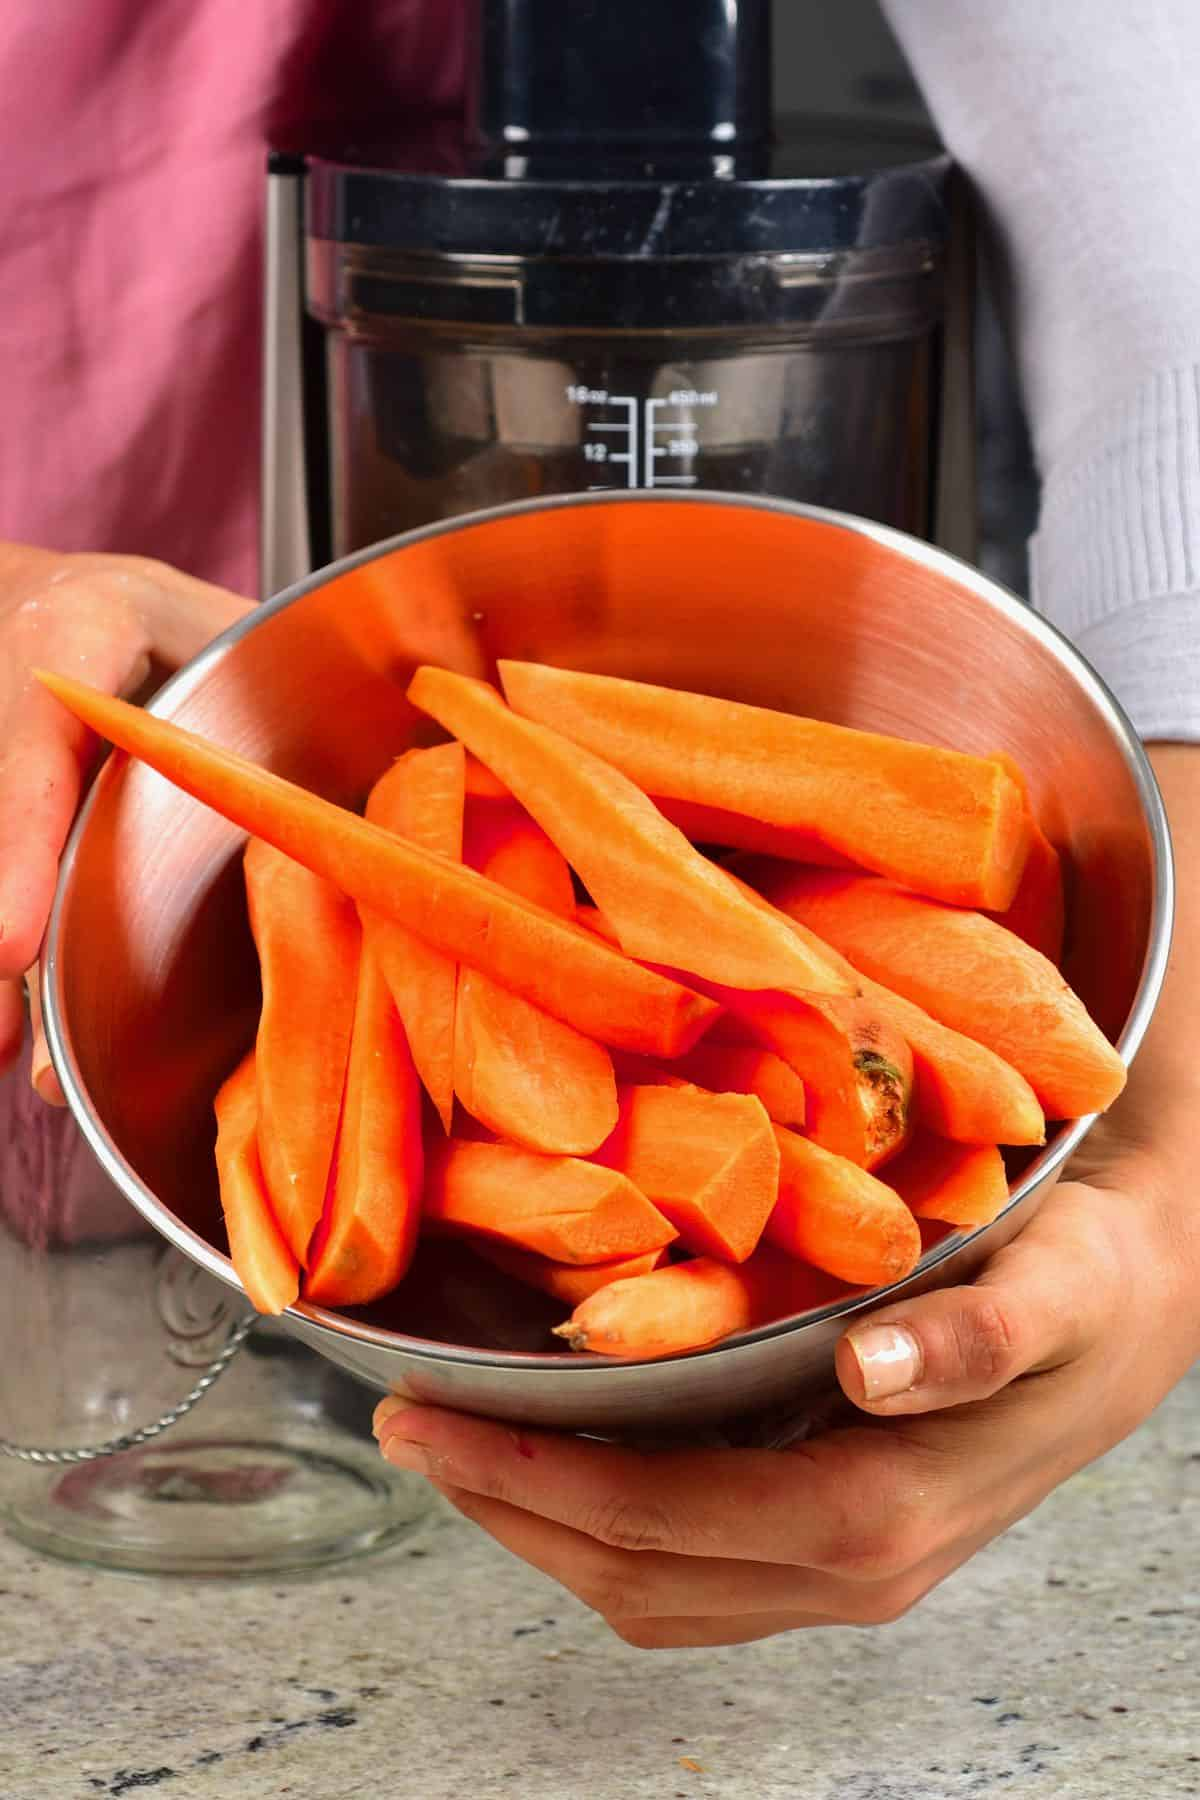 Sliced carrots in a bowl in front of a juicer